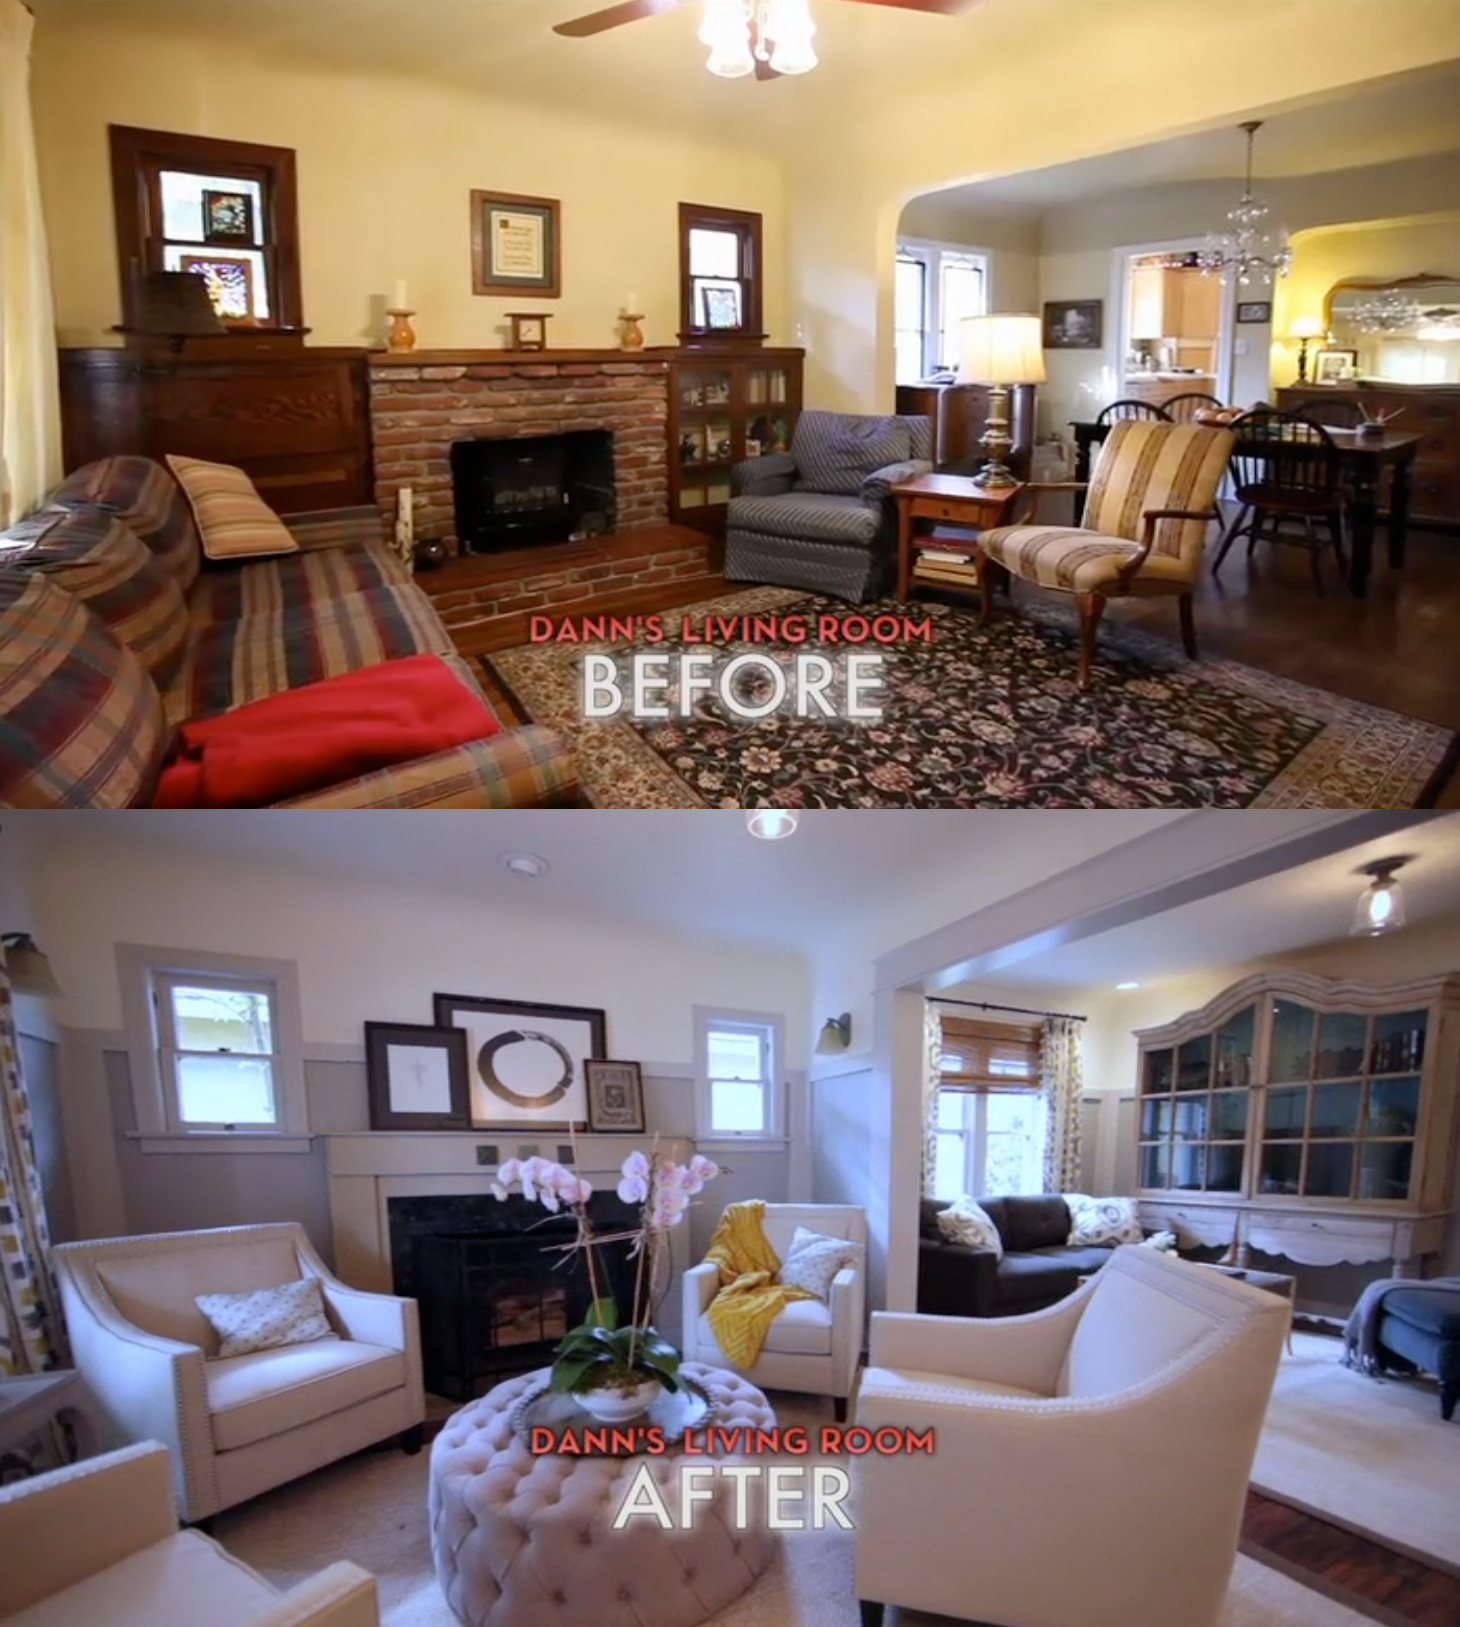 Renovate Room Ideas: #Dreambuilders Designer Dann' Re-designed #livingroom